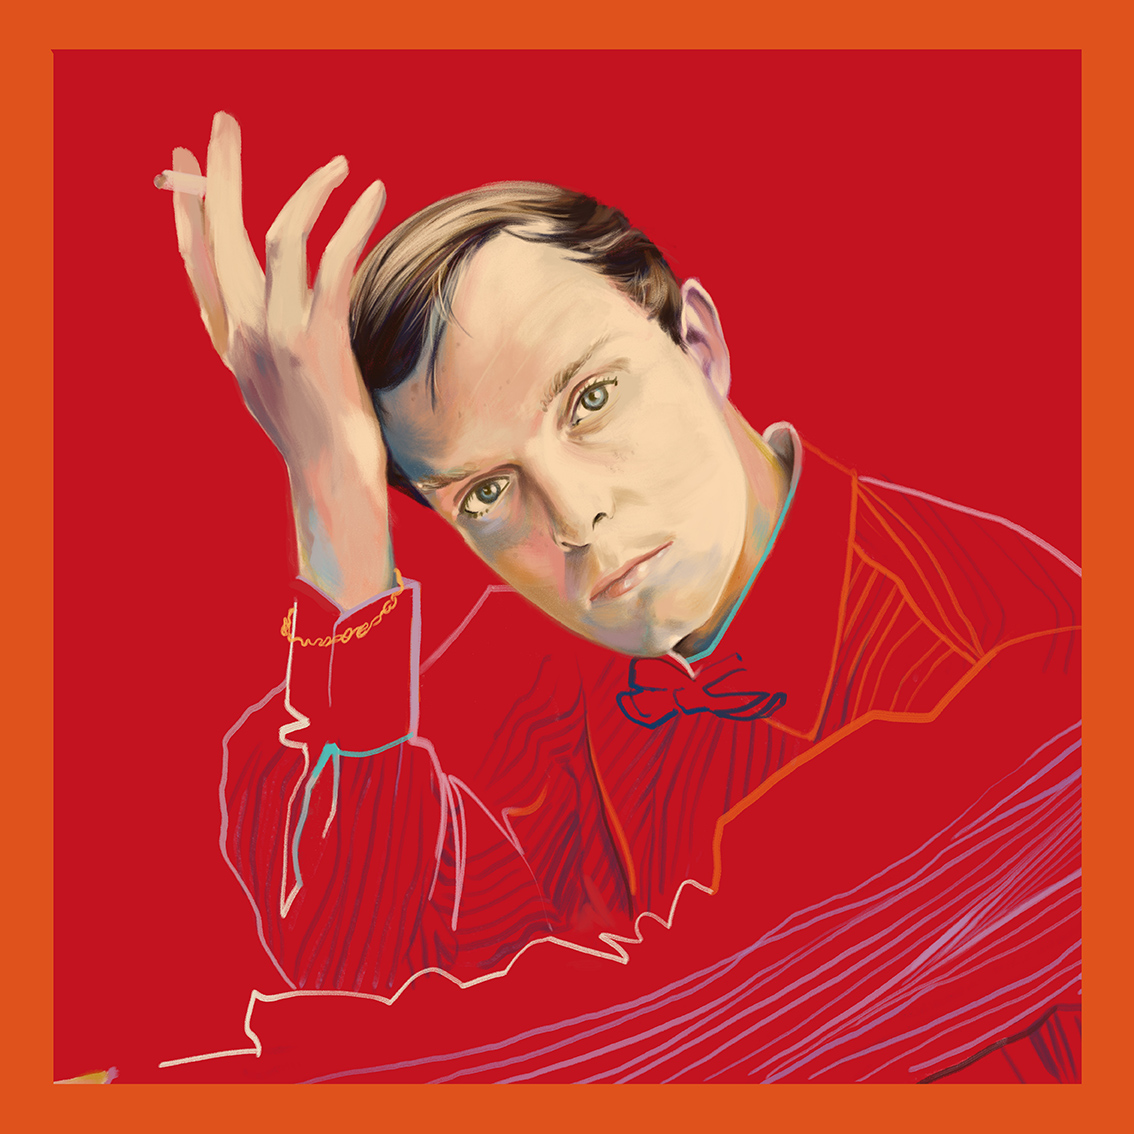 TrumanCapote_Portrait_Illustration_SpirosHalaris_2019.jpg